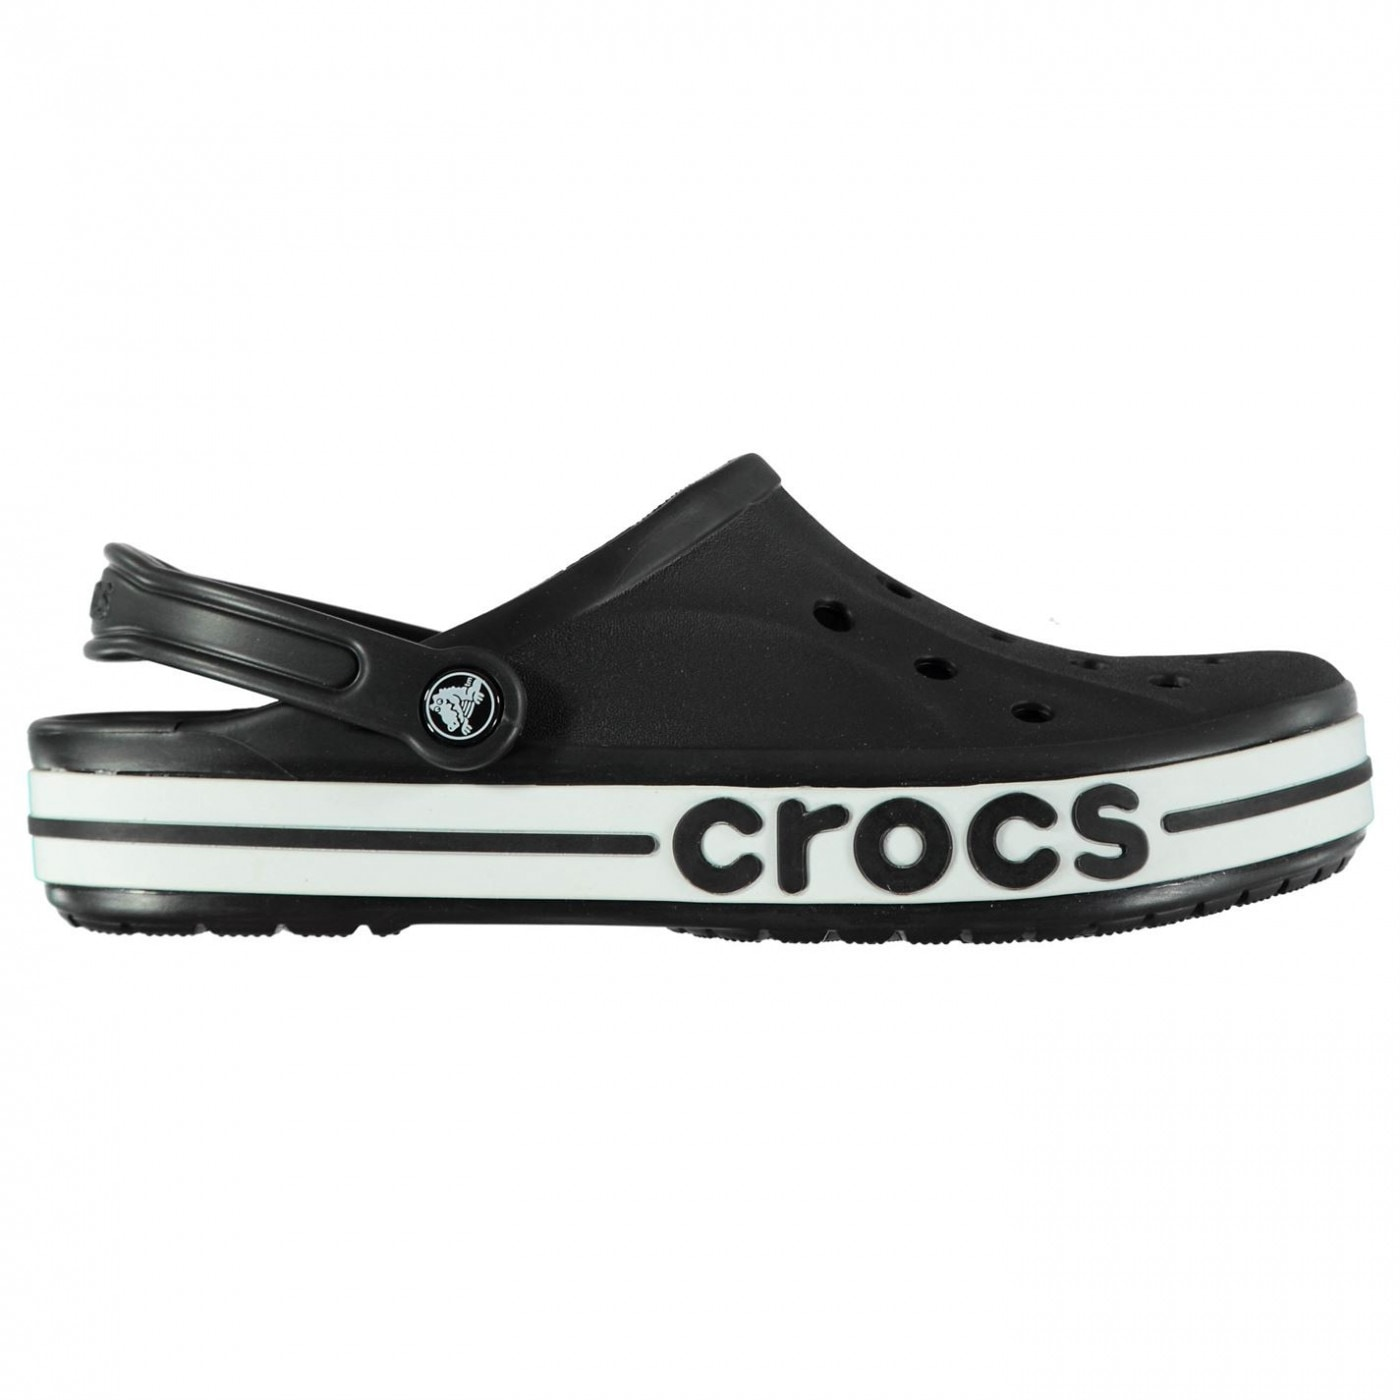 Crocs Baya Band Mens Sandals